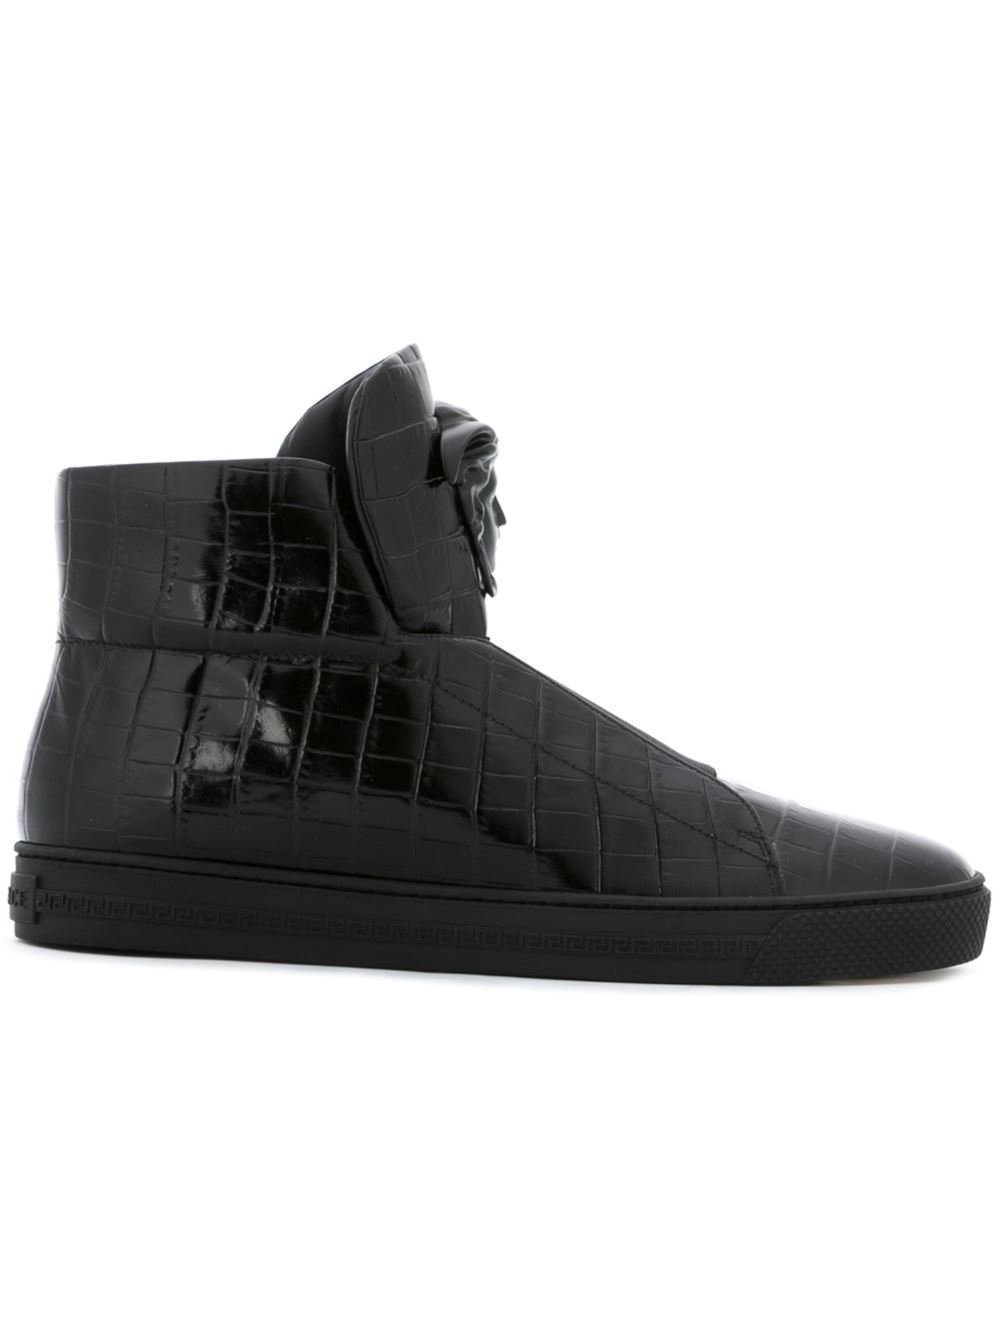 versace palazzo idol medusa leather sneakers for men lyst. Black Bedroom Furniture Sets. Home Design Ideas